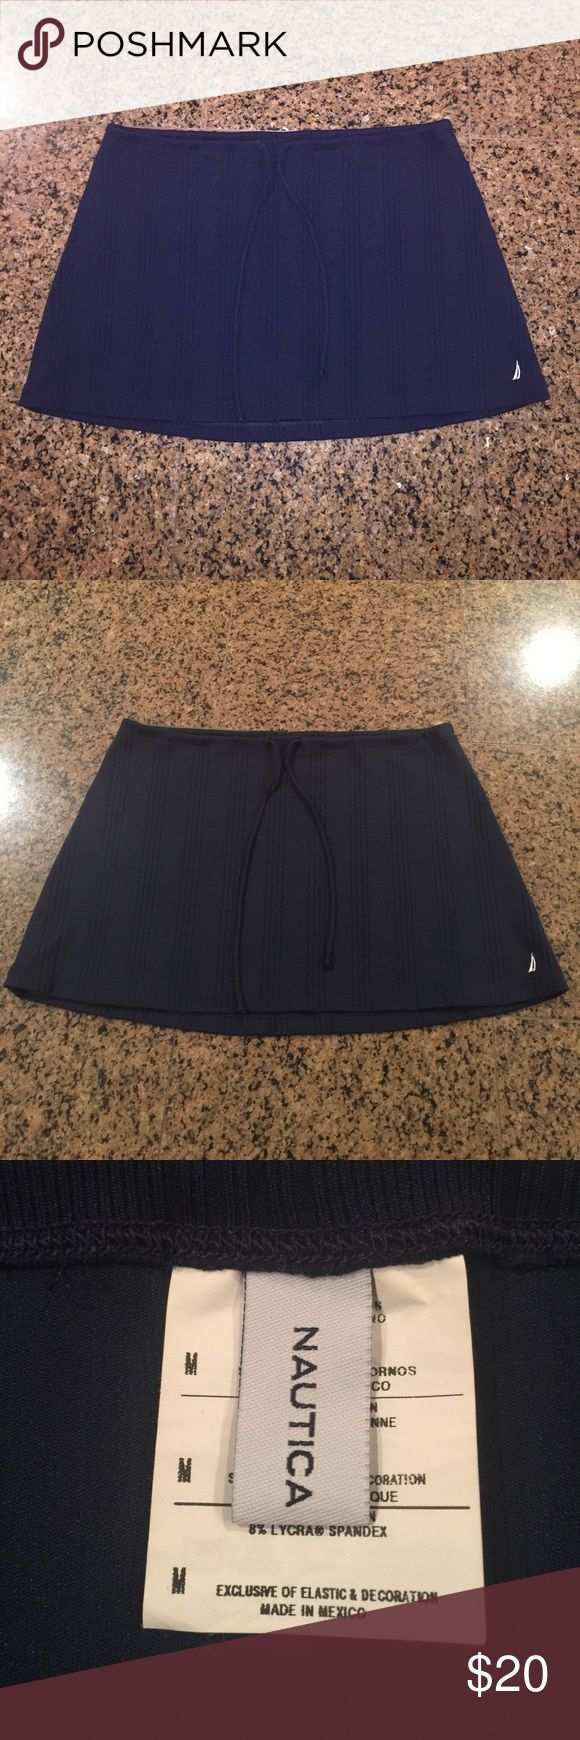 Nautica Skirt New without tags! Perfect condition! Nautica Skirts